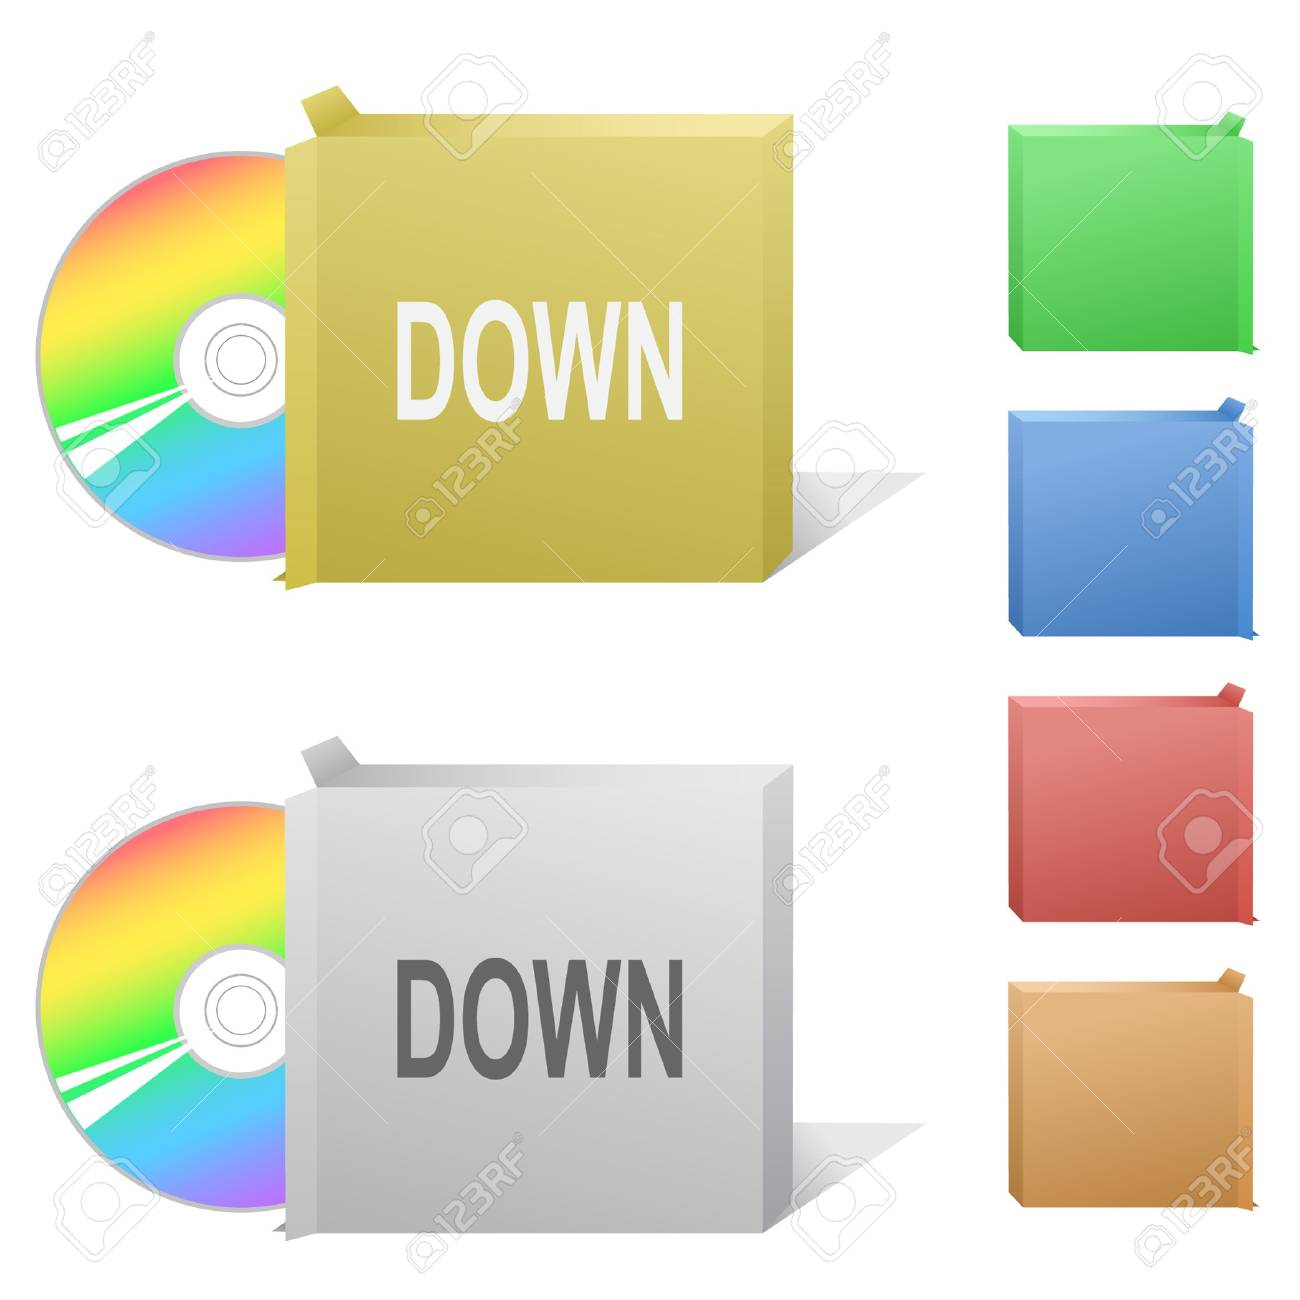 Down. Box with compact disc. Stock Vector - 7301883